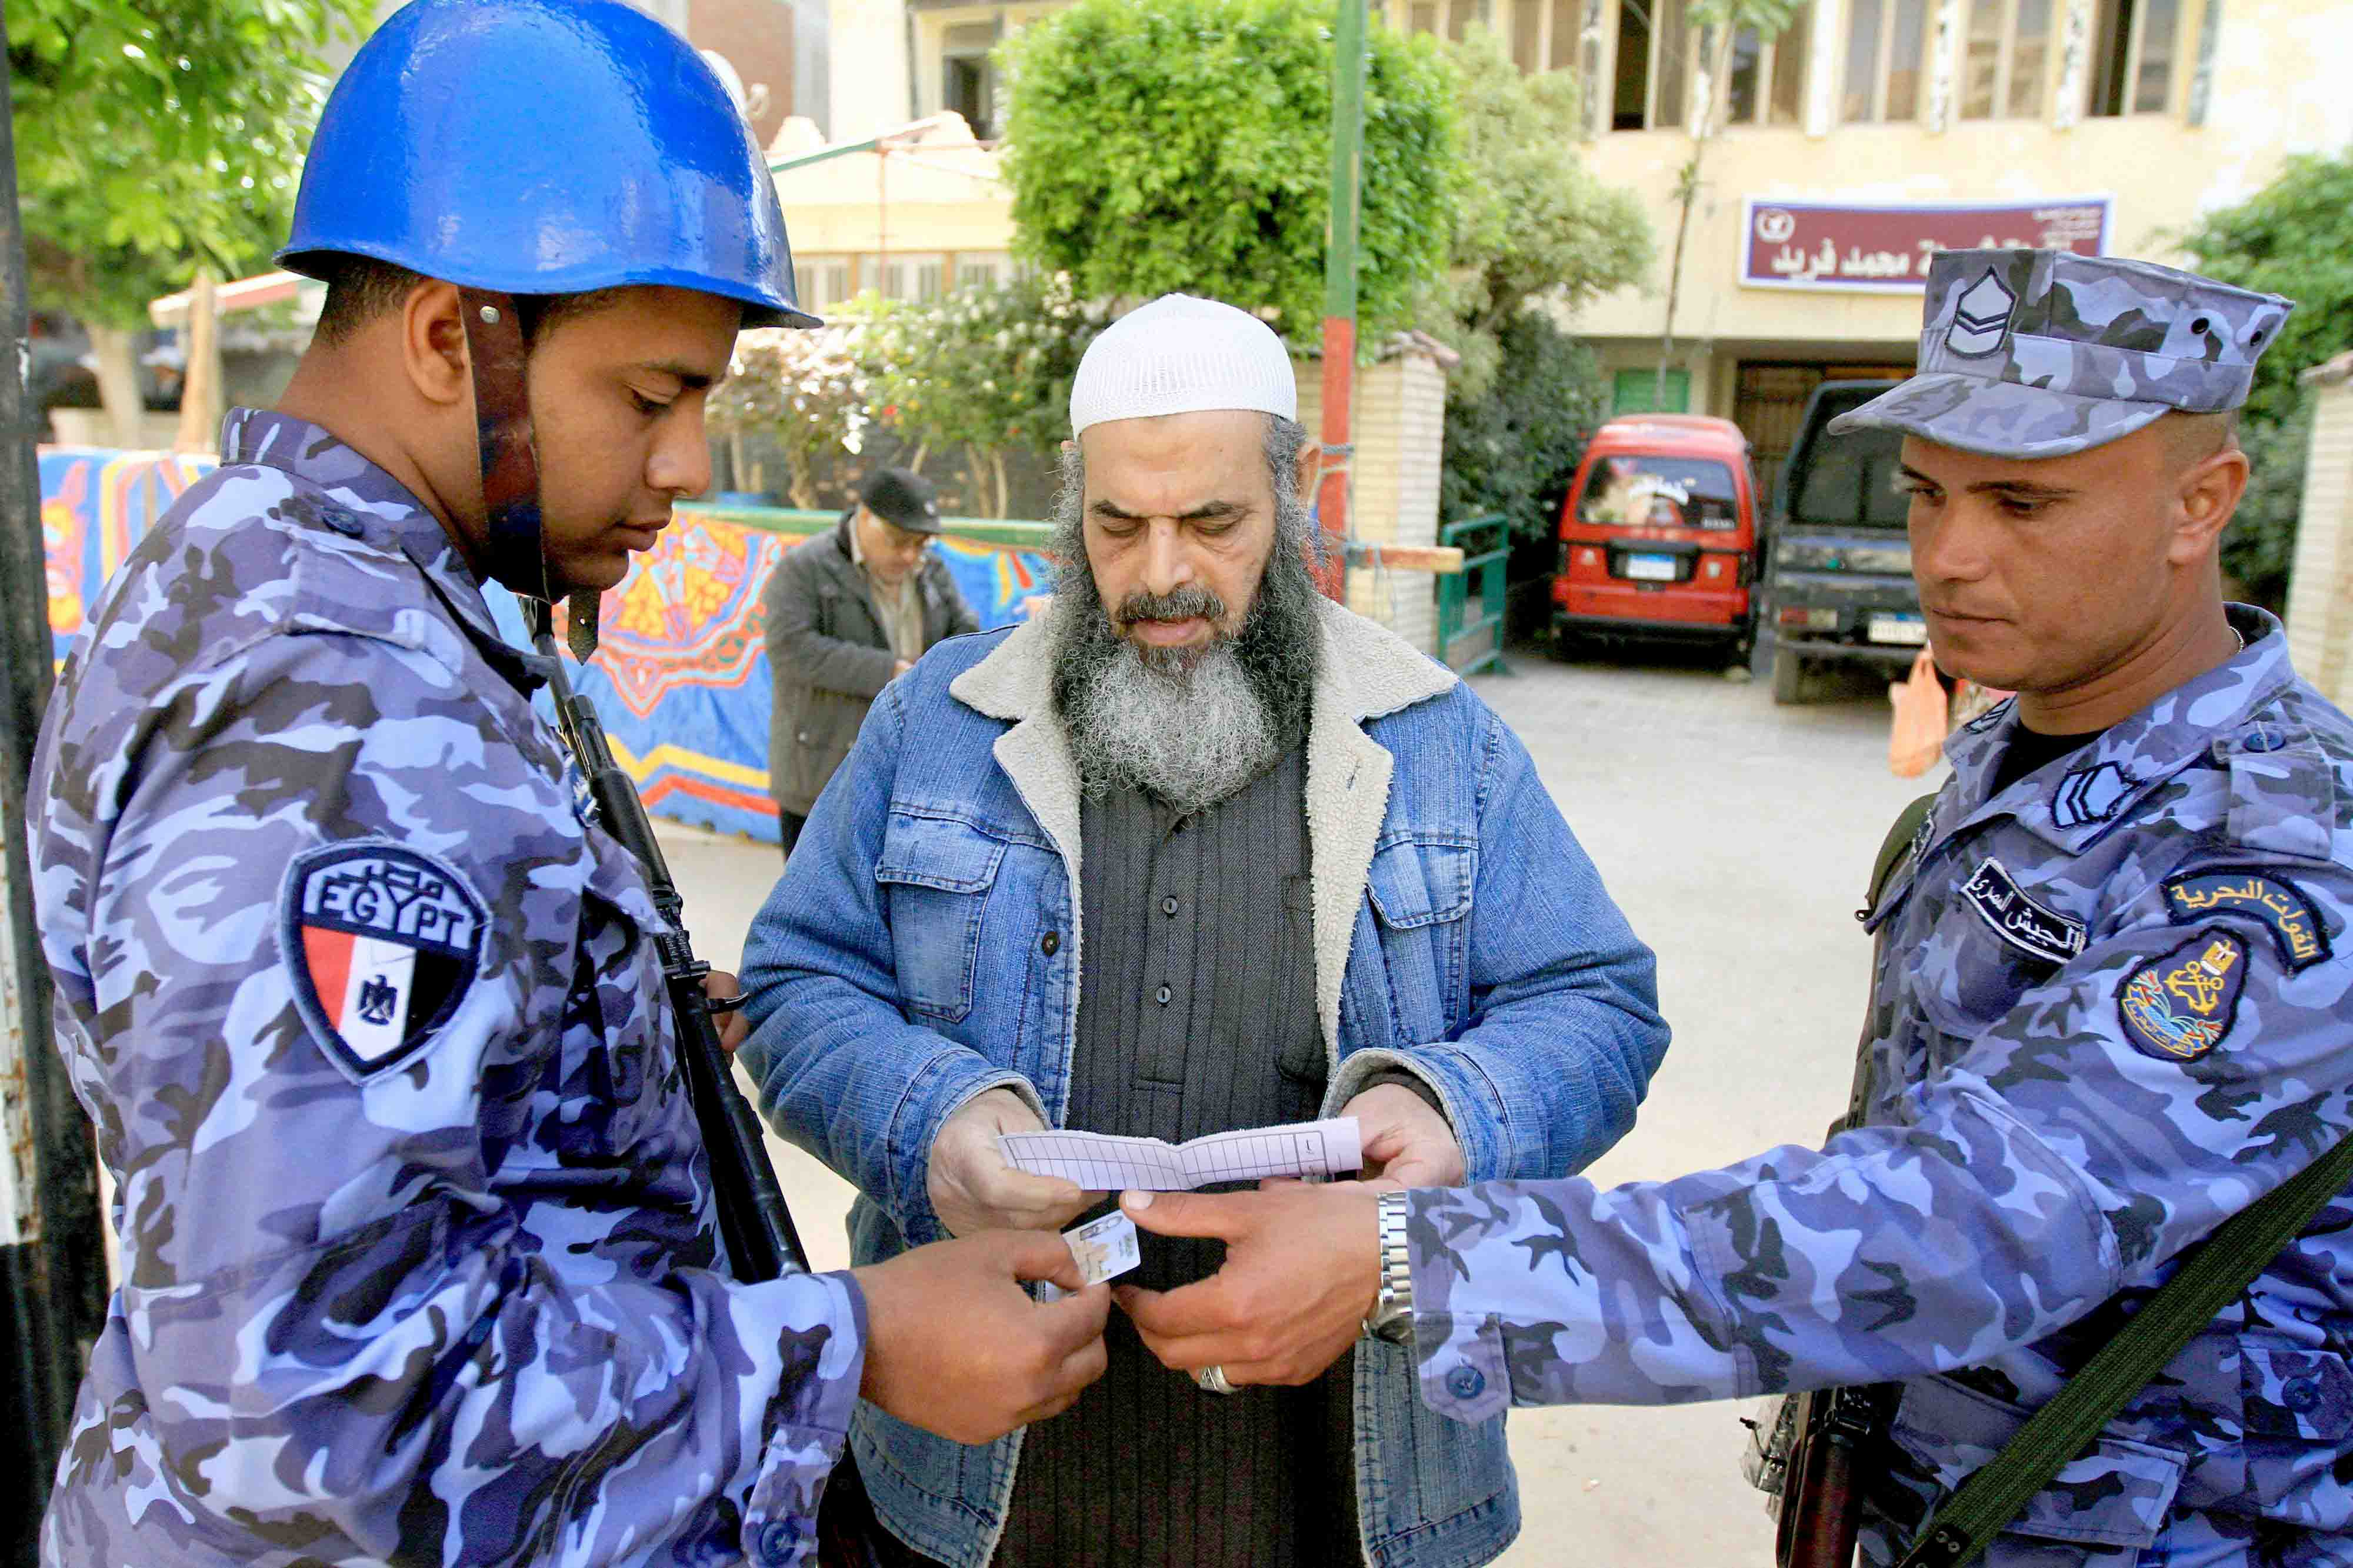 In check. Egyptian naval conscripts check the ID of a Salafist man in al-Montazah district of Egypt's second city of Alexandria, last March. (AFP)